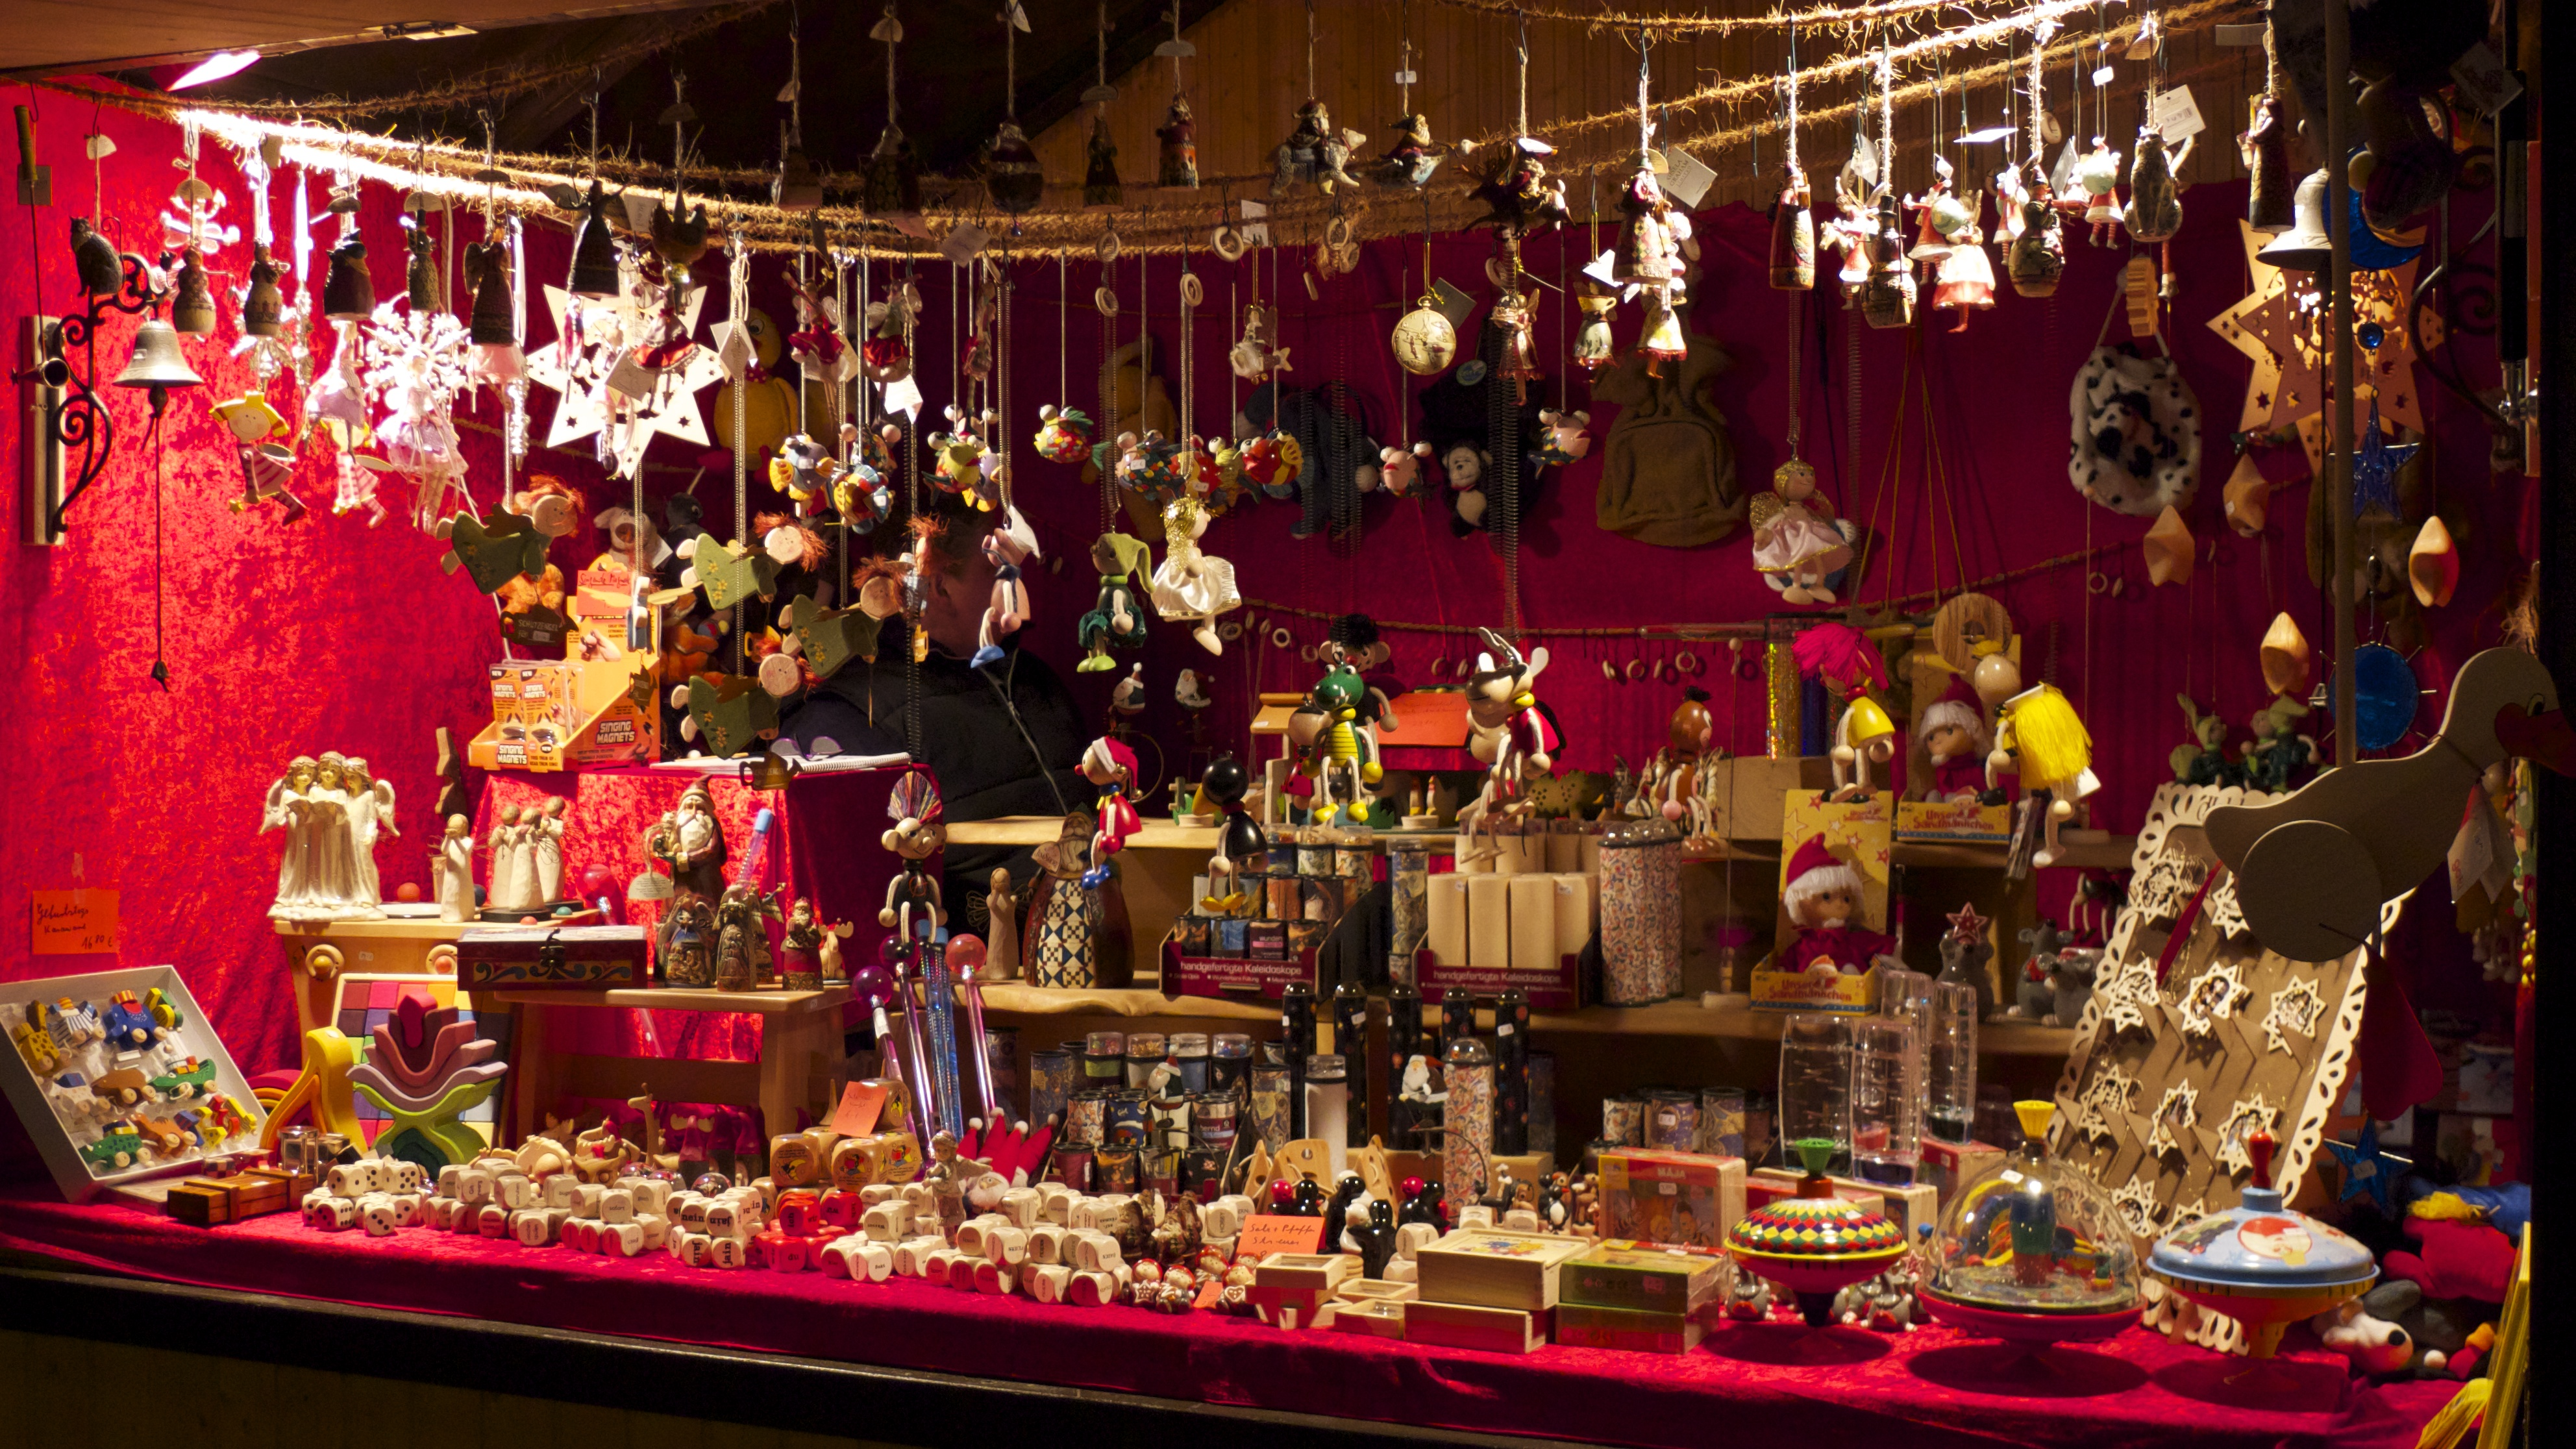 Traditional german christmas decorations -  Traditionally Made Toys Alongside Their Contemporary Counterparts You Will Find Stalls Of Hand Crafted And Intricately Detailed Christmas Decorations